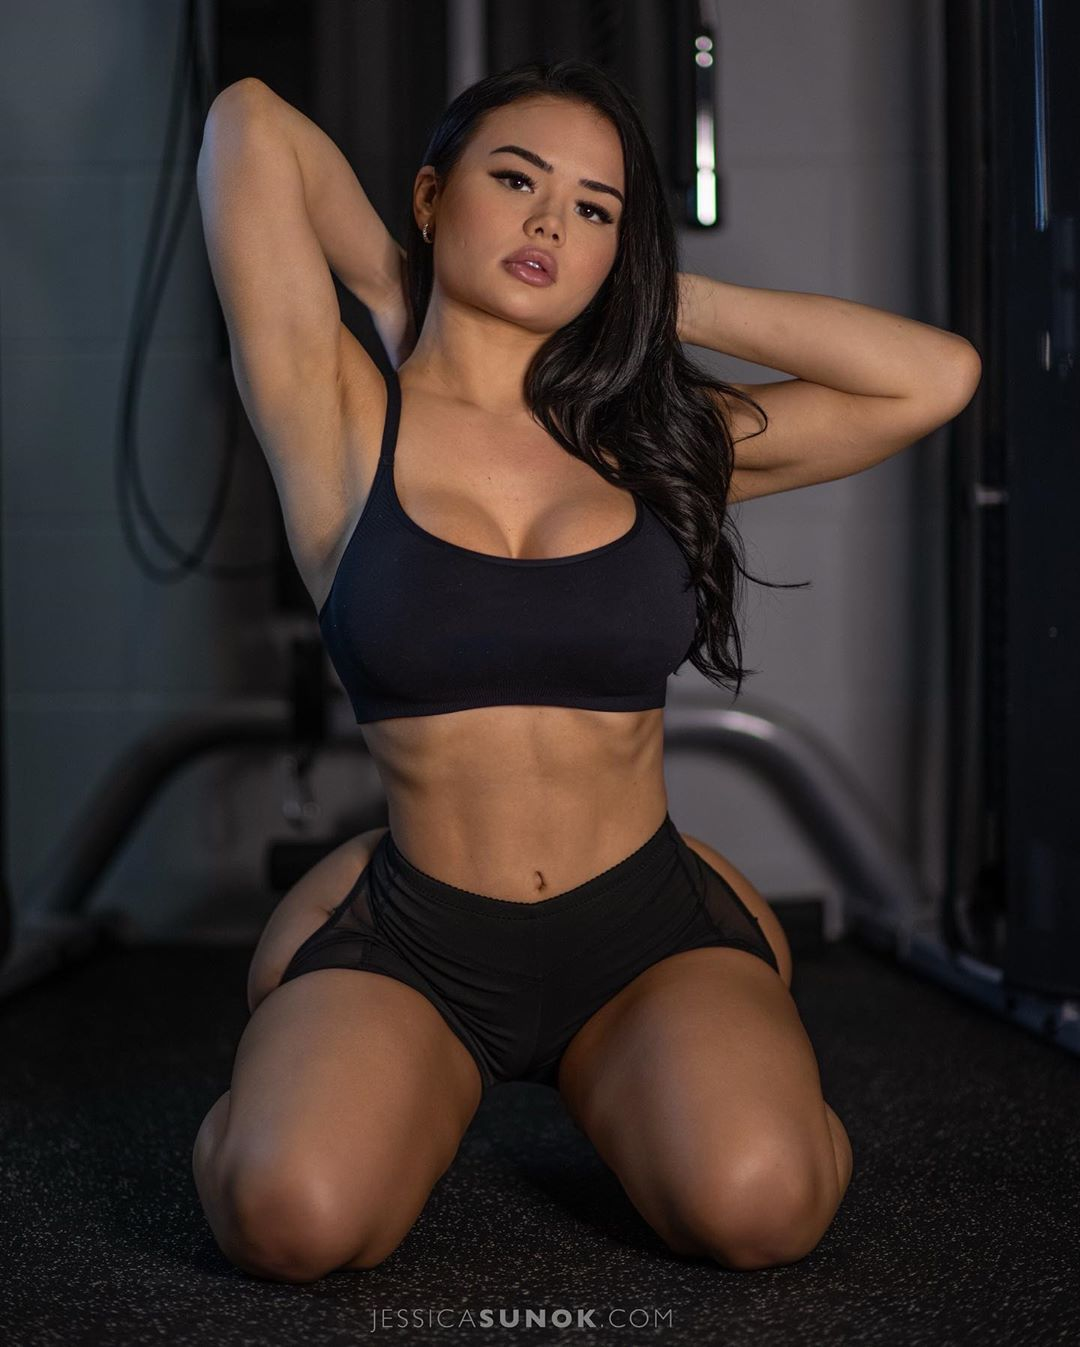 Christian model poses in workout gear